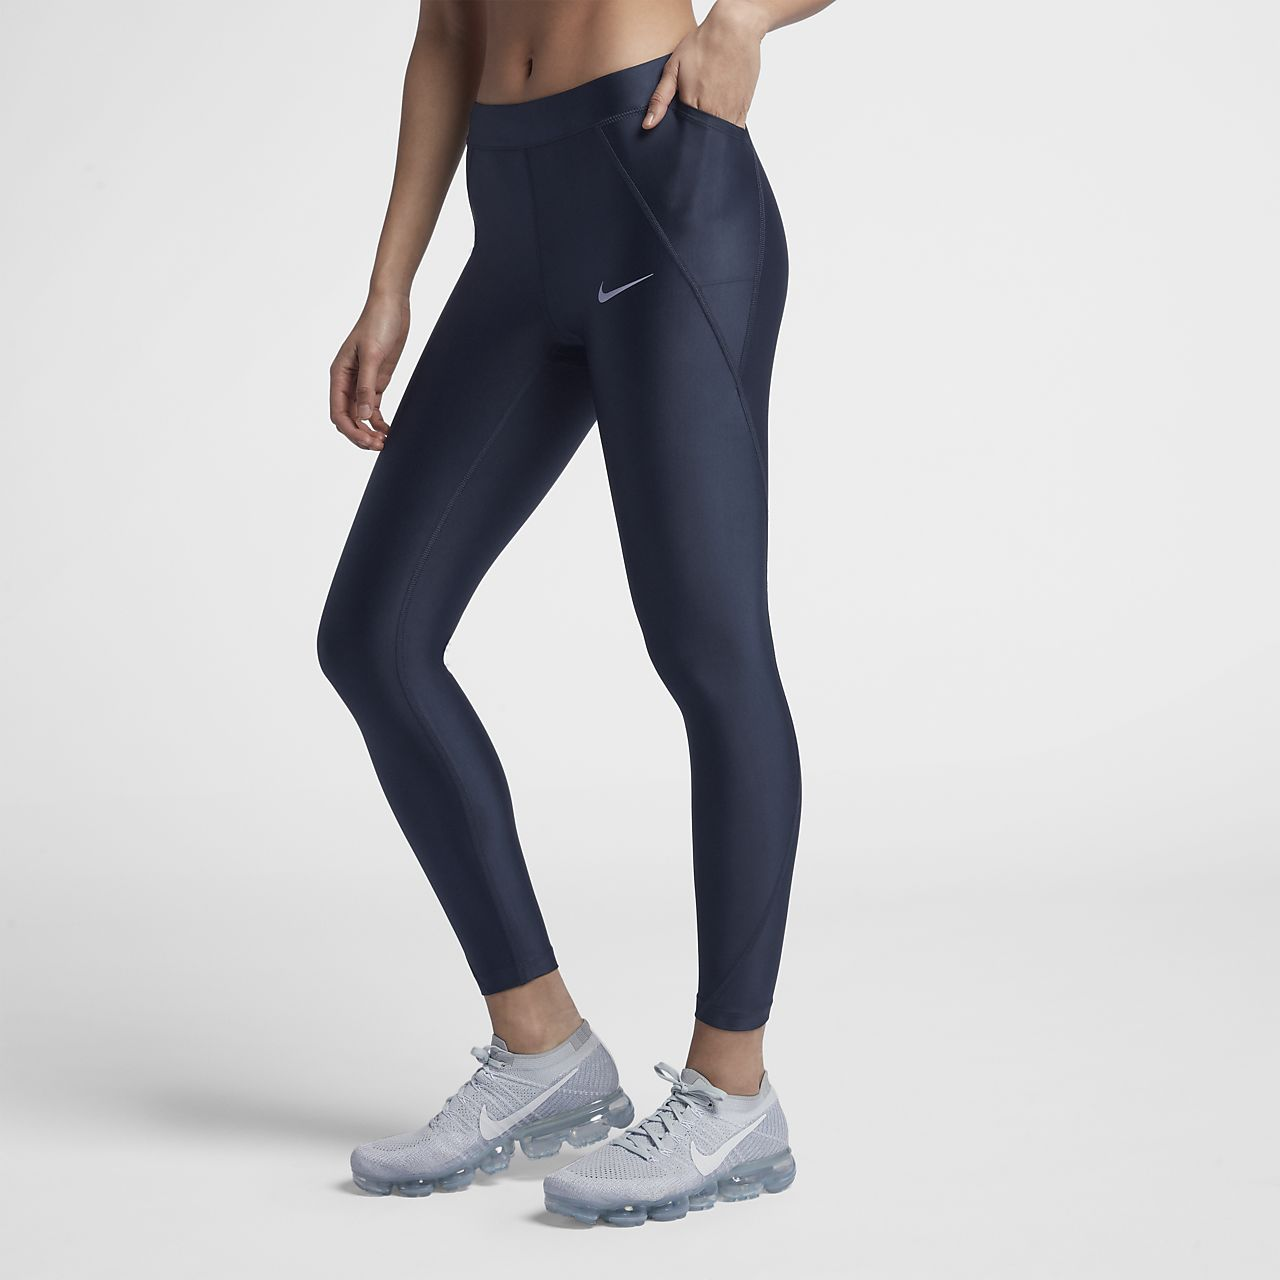 9ac2c88fe6 Nike Speed Women s Mid-Rise 7 8 Running Tights. Nike.com GB